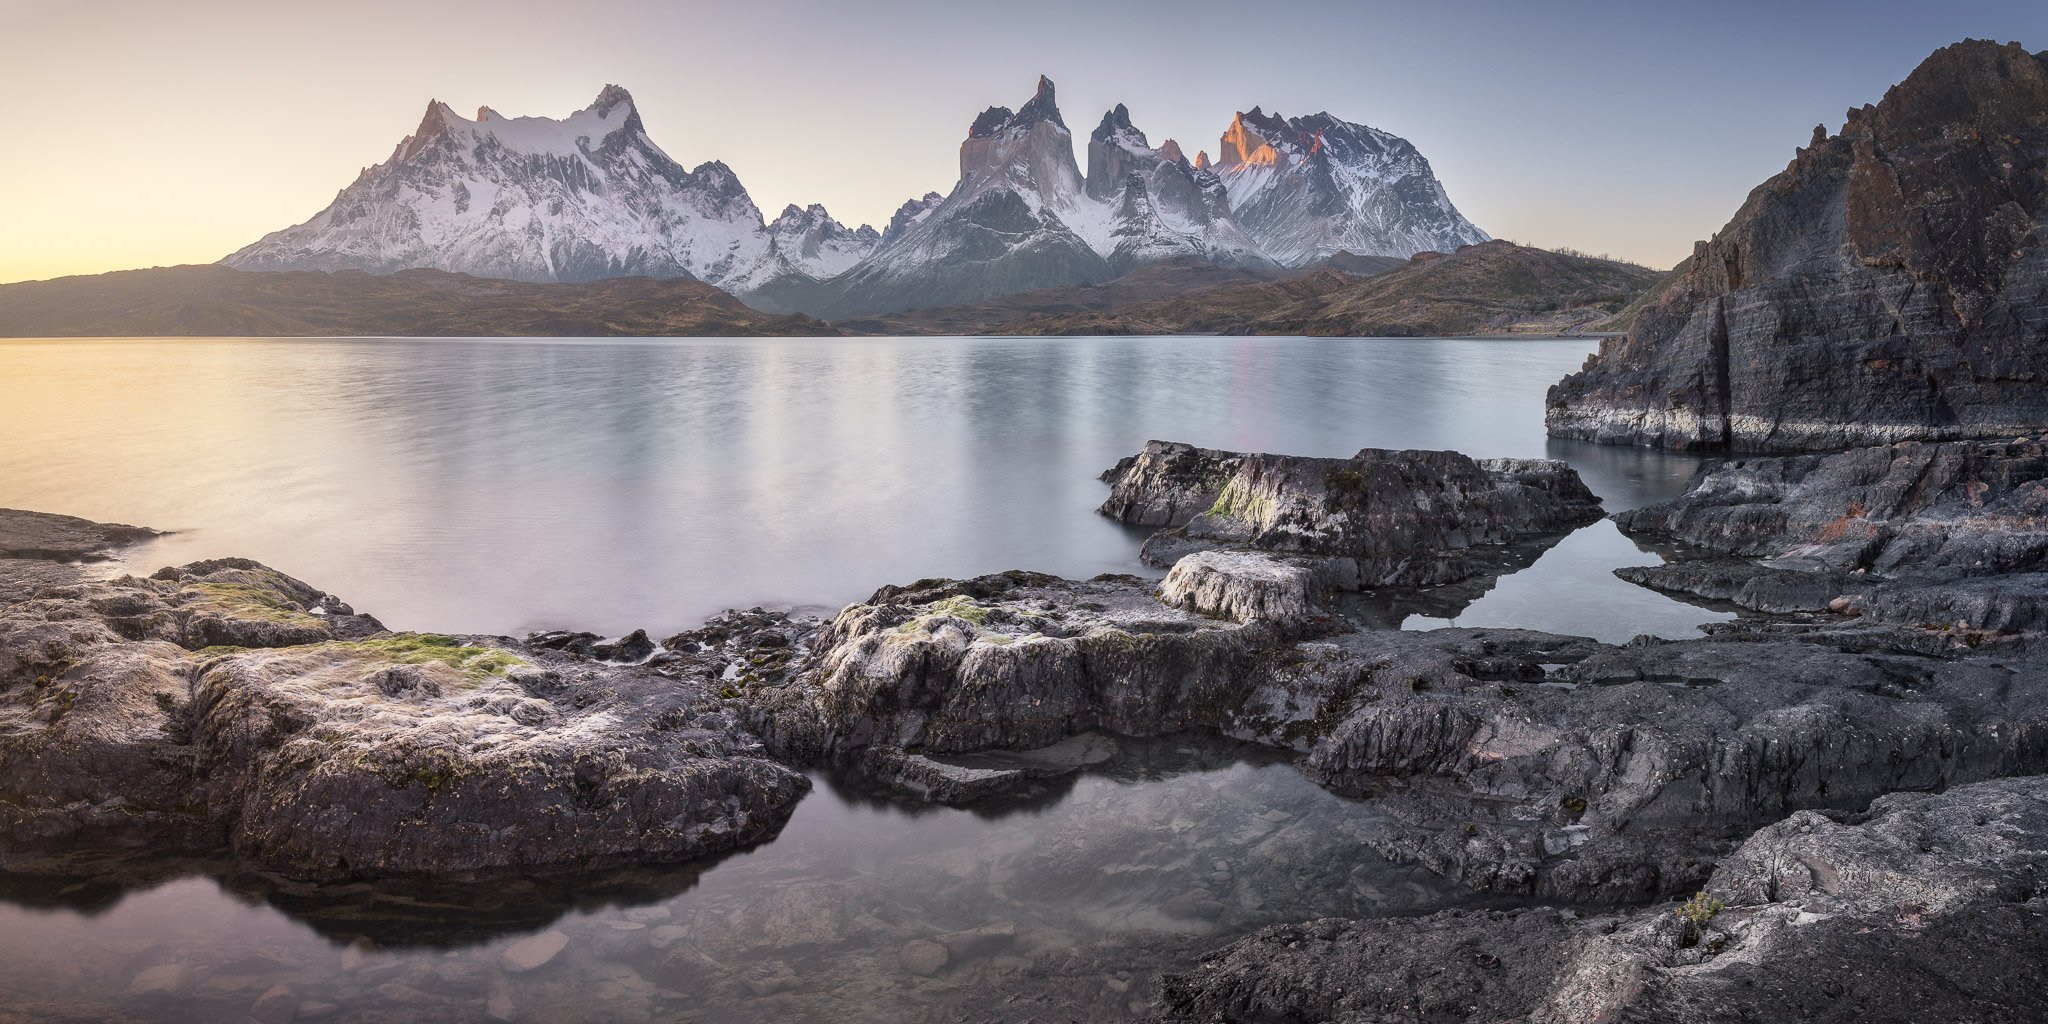 america, andes, basalt, blue, calm, chile, cliff, cuernos, del, dramatic, evening, hiking, history, island, lago, lake, landmark, landscape, light, mountain, national, nature, outdoor, paine, pano, panorama, panoramic, park, patagonia, peak, pehoe, range,, anshar